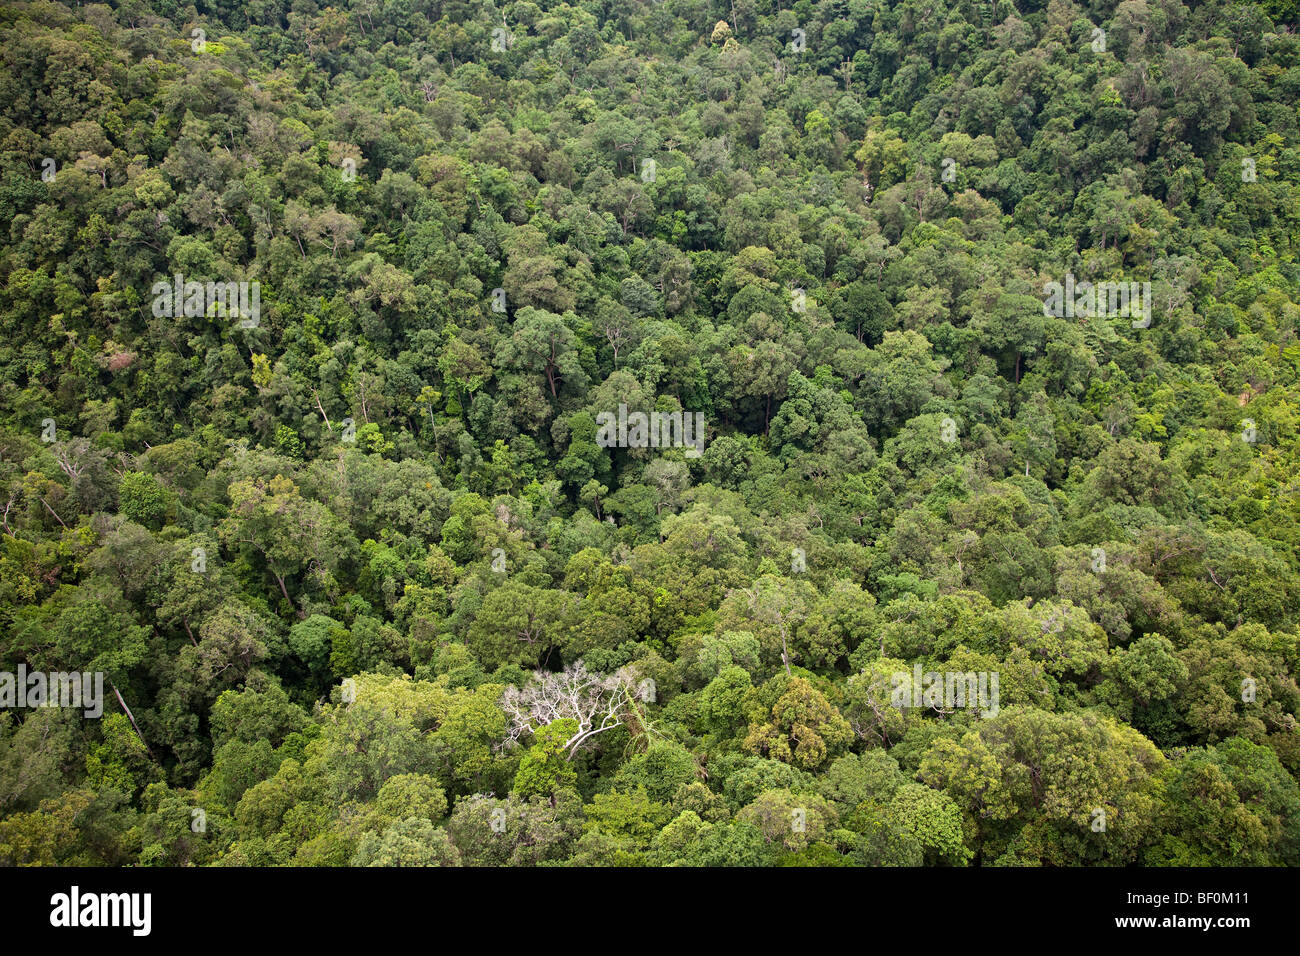 Aerial view of secondary forest canopy, Malaysia - Stock Image